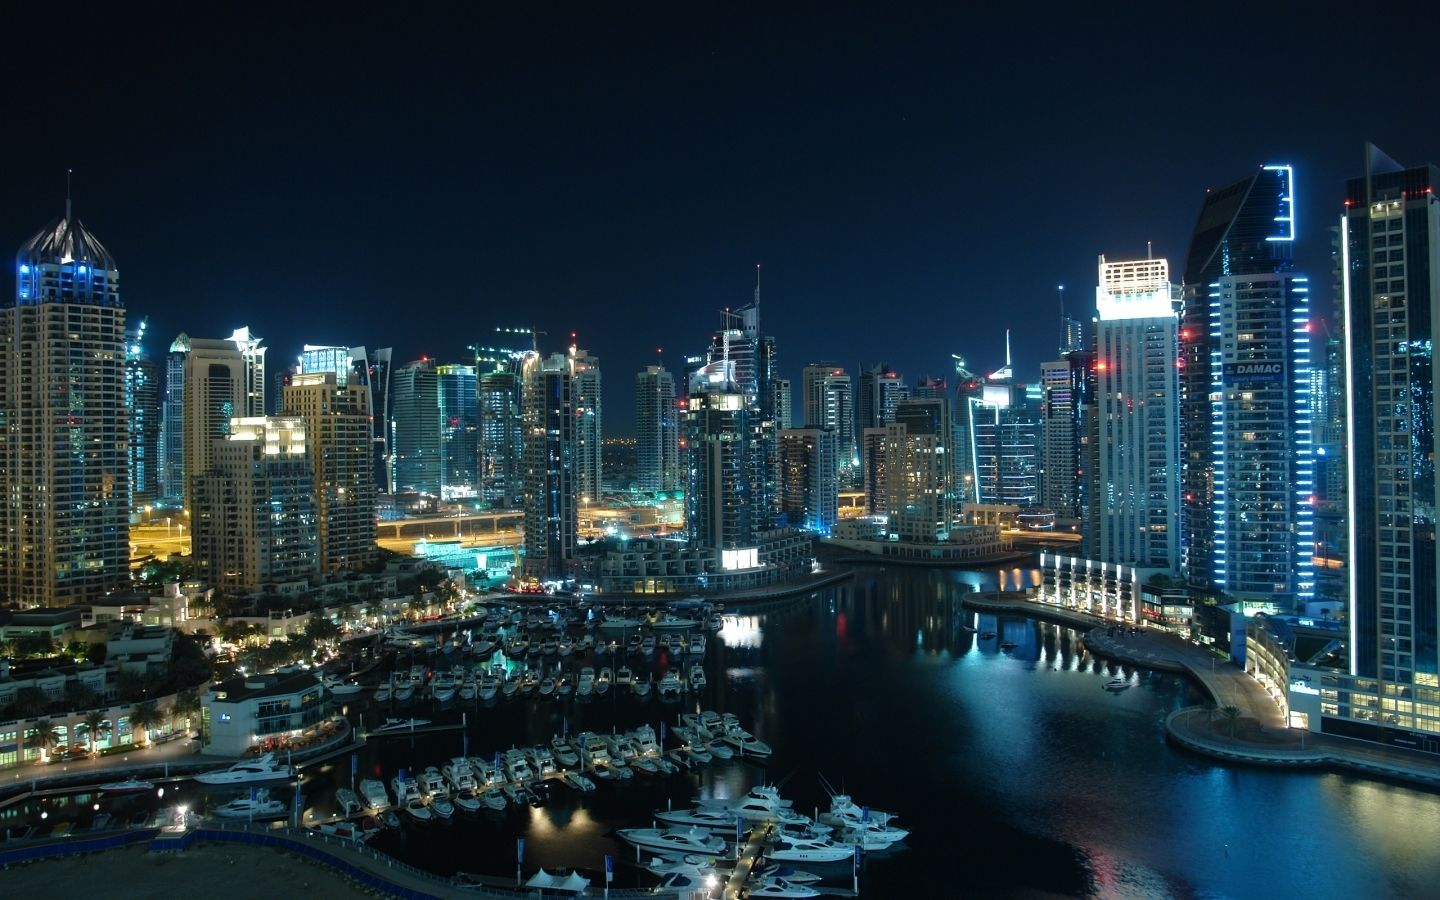 Amazing Dubai Marina Macbook Pro Wallpaper Hd Joes Pc And Repair